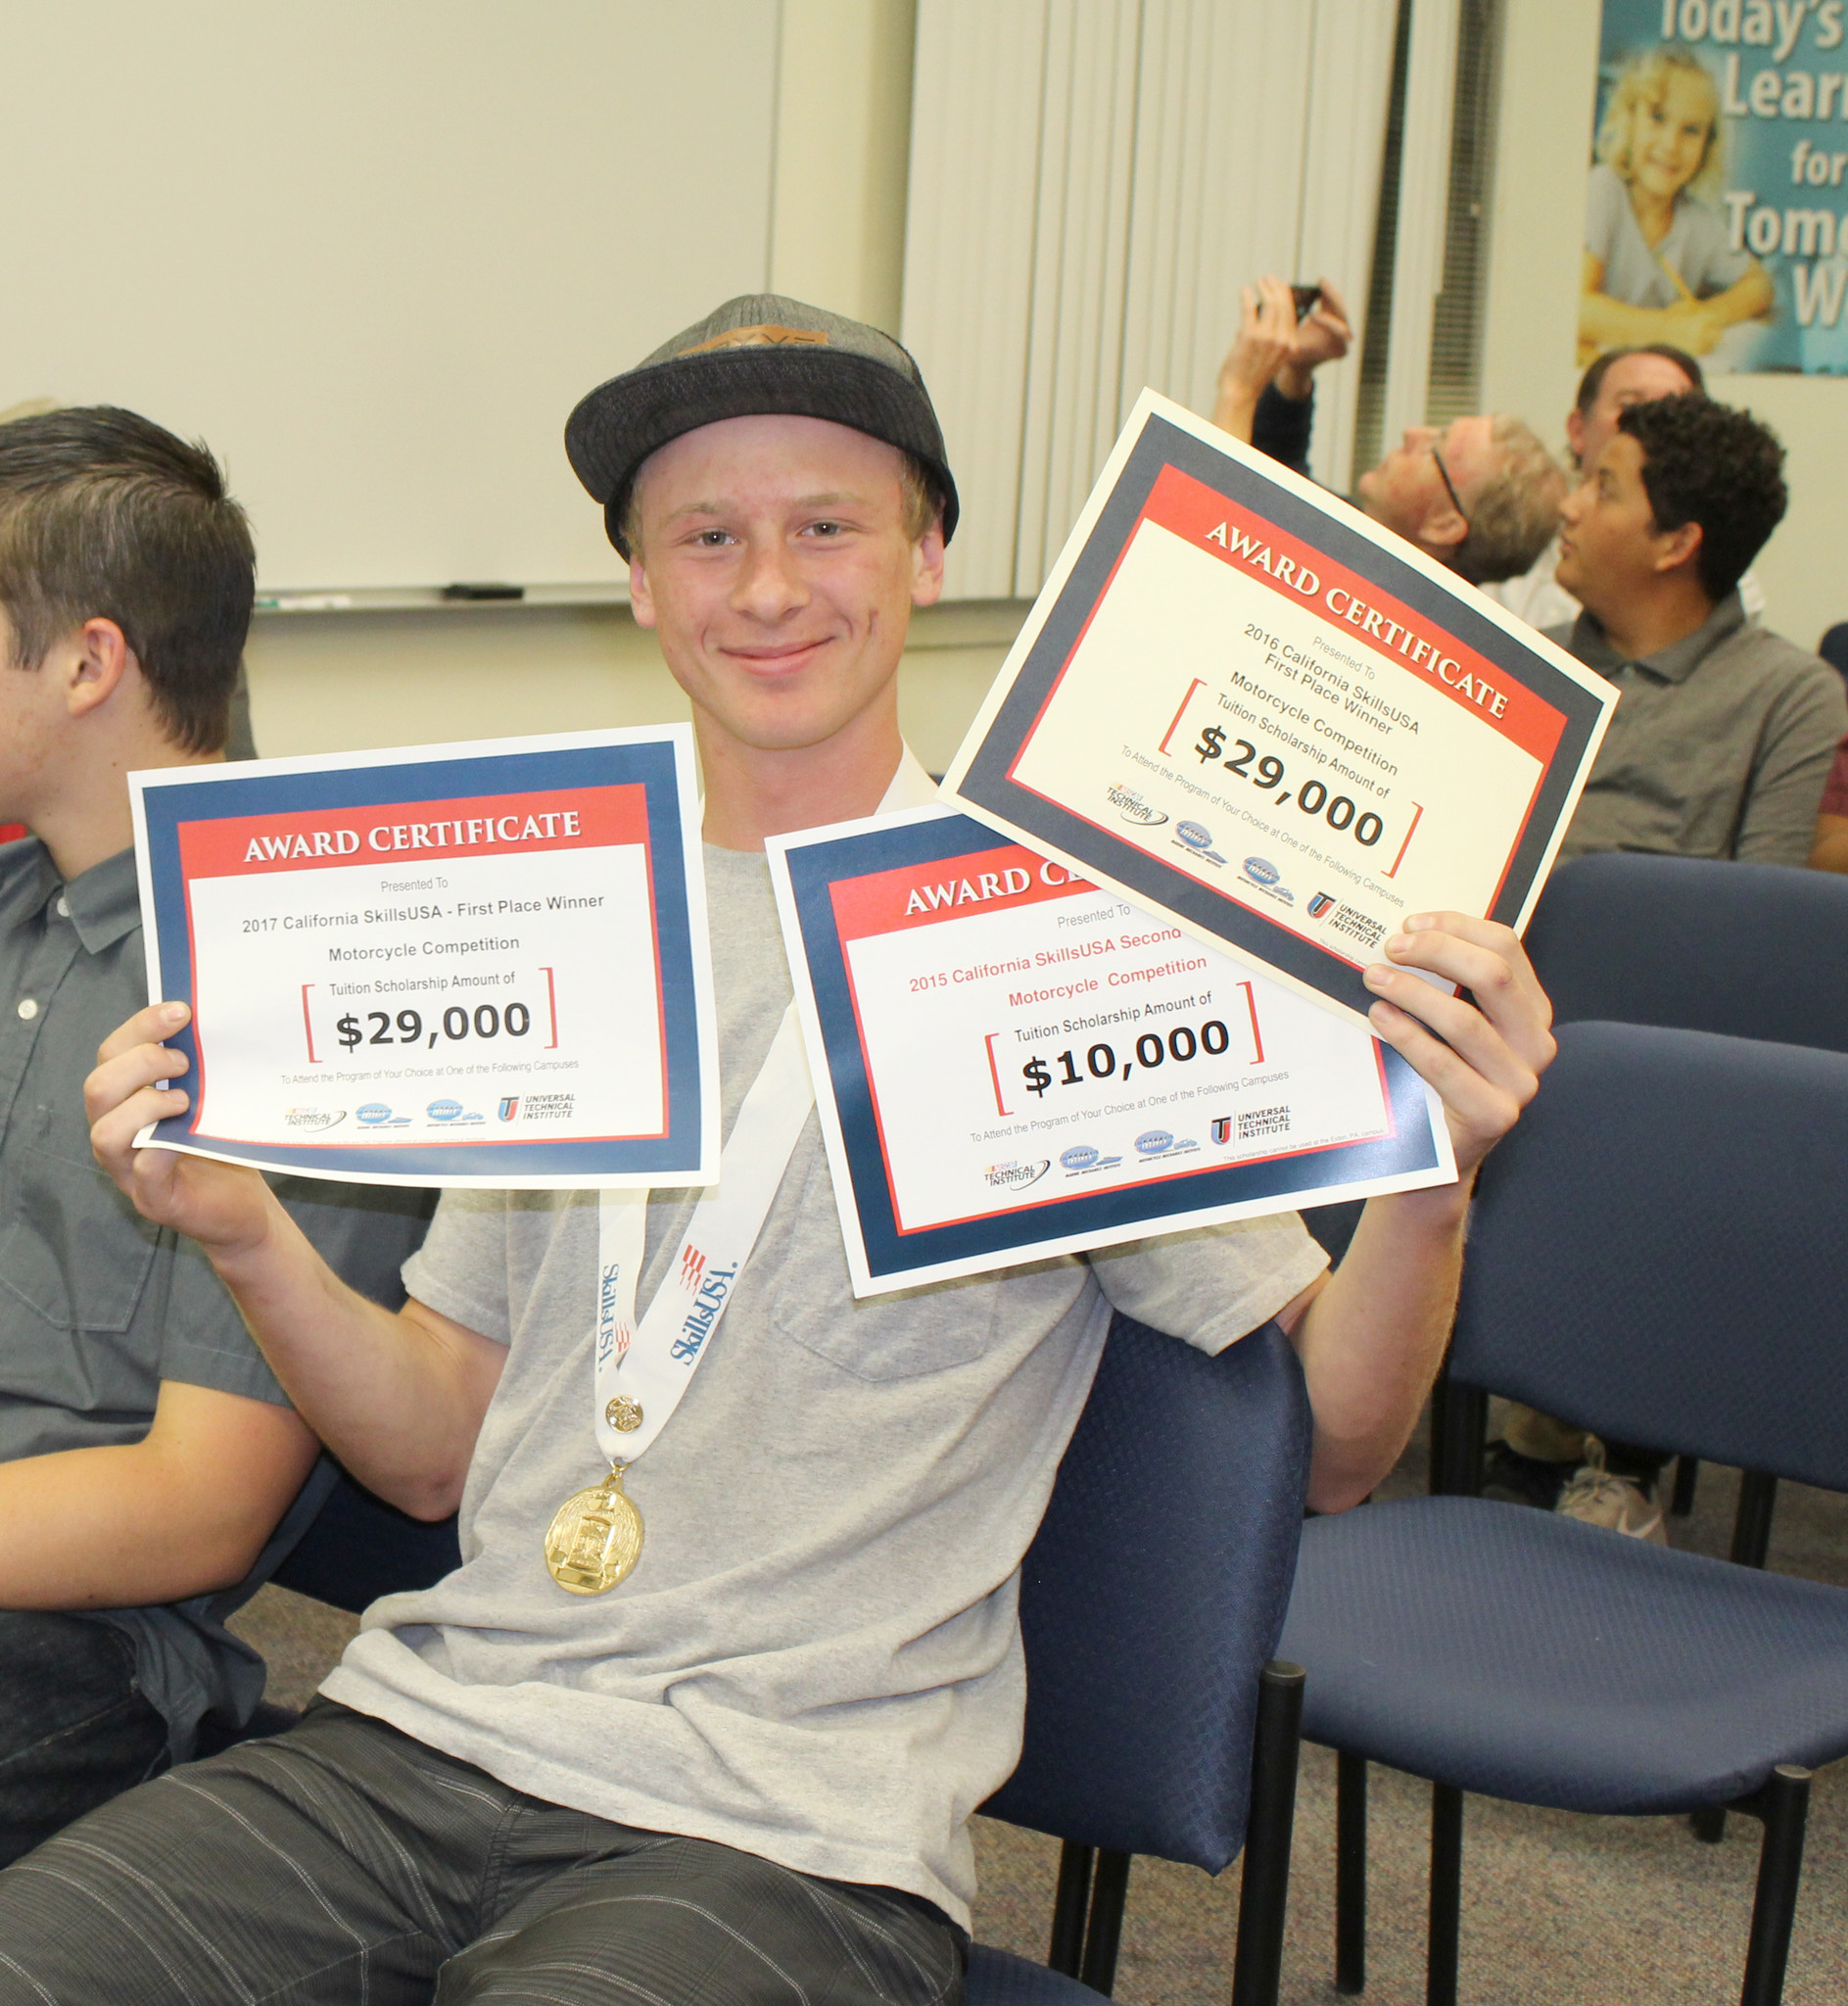 During a recent school board meeting, Seth Levy shows scholarship award certificates he earned in California SkillsUSA competitions in 2015, '16, and '17.